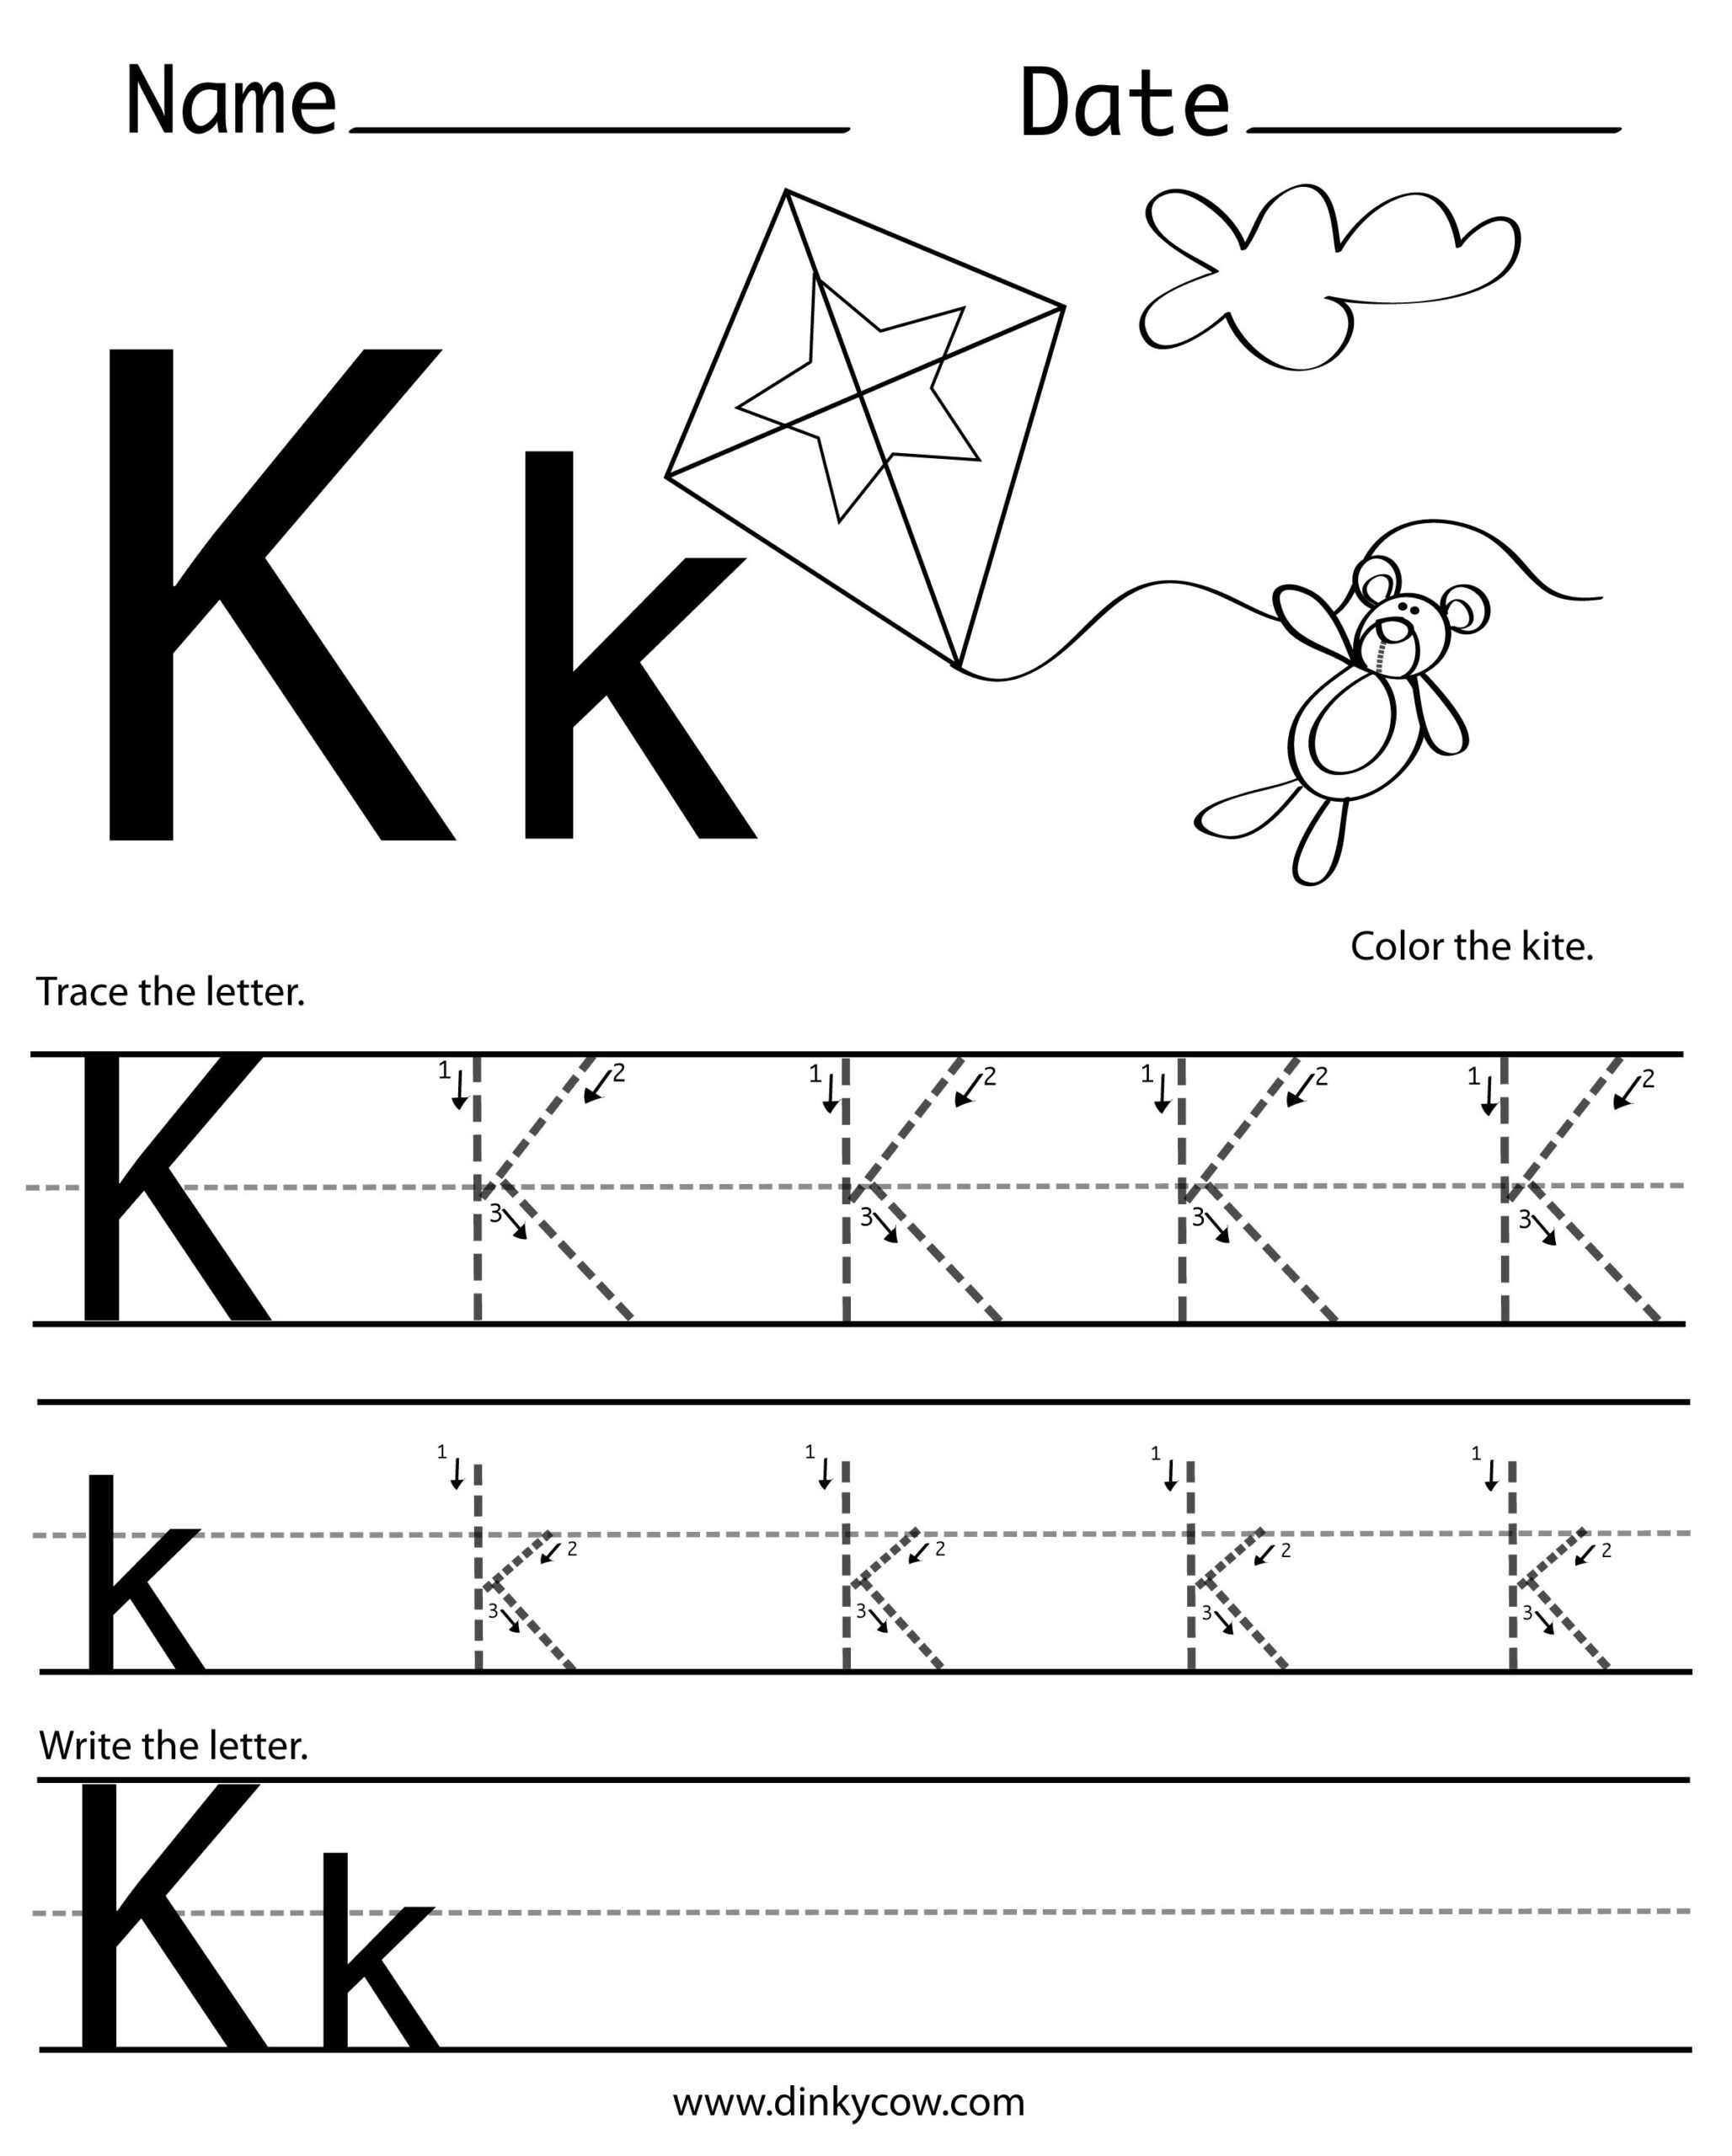 K-Free-Handwriting-Worksheet-Print 2,400×2,988 Pixels